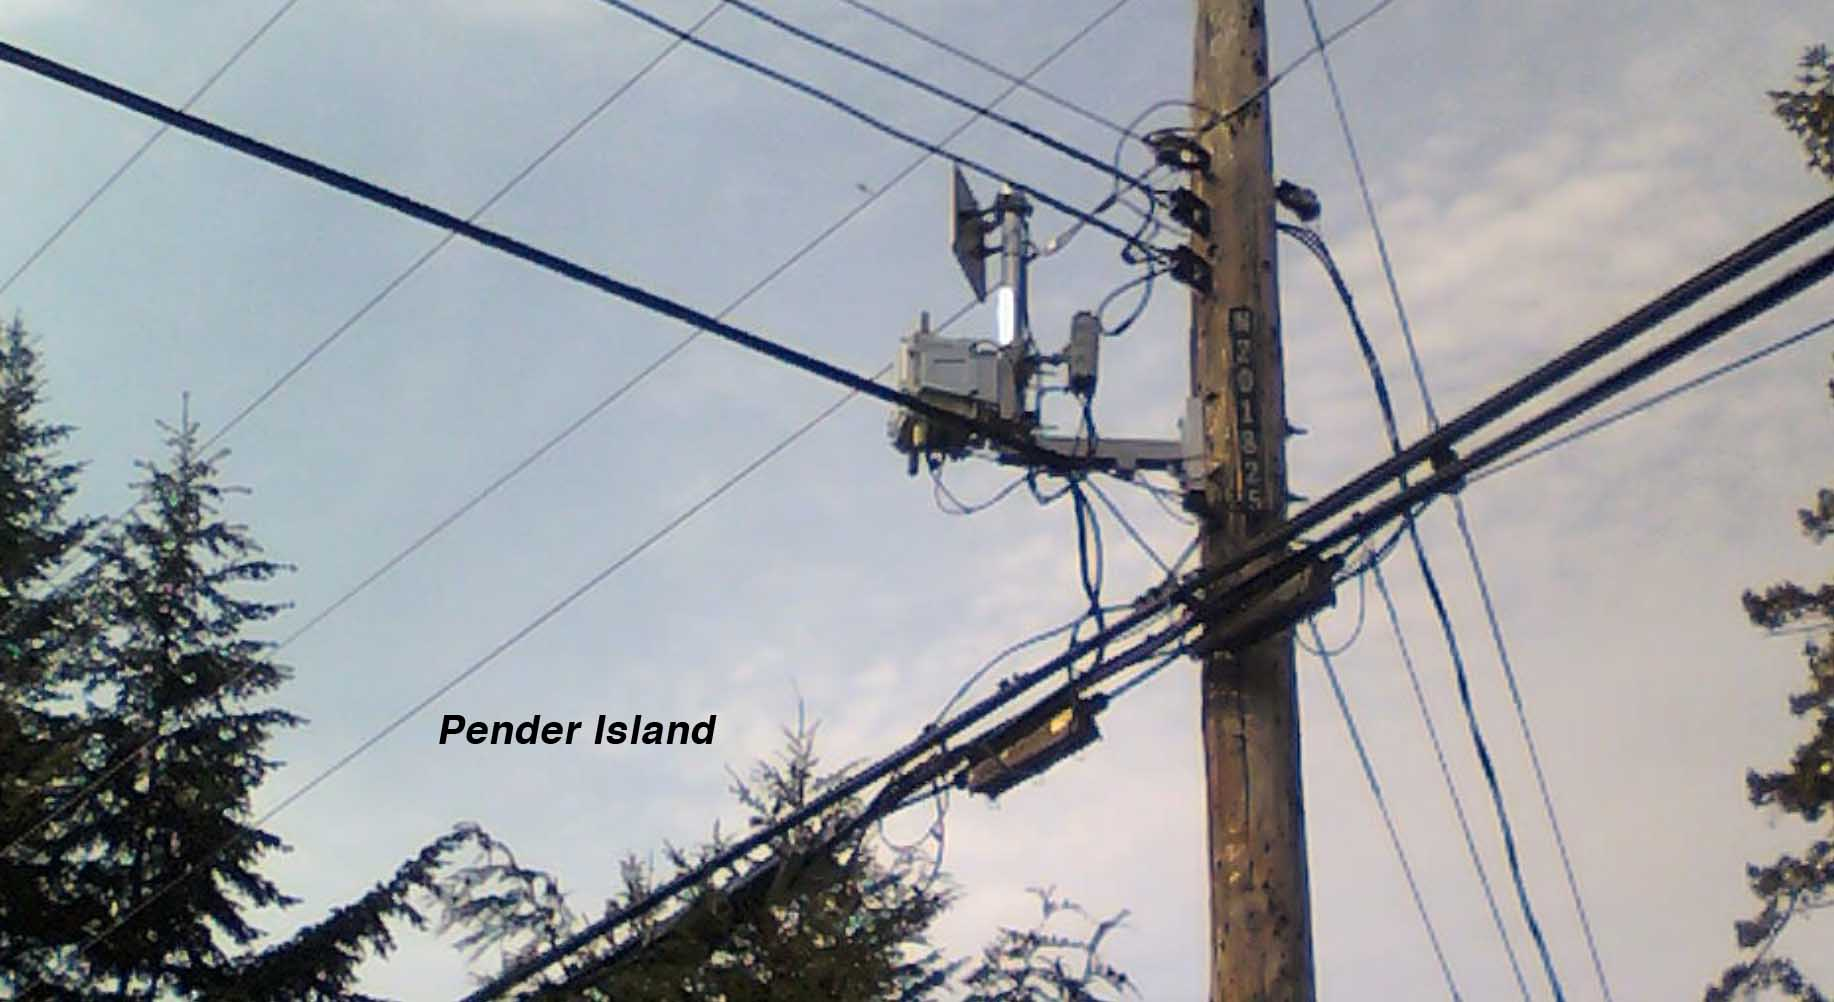 Pender Island - BC Hydro Smart Meter MESH Network with additional MTI Wireless Edge antenna 1.78 – 1.85 GHz